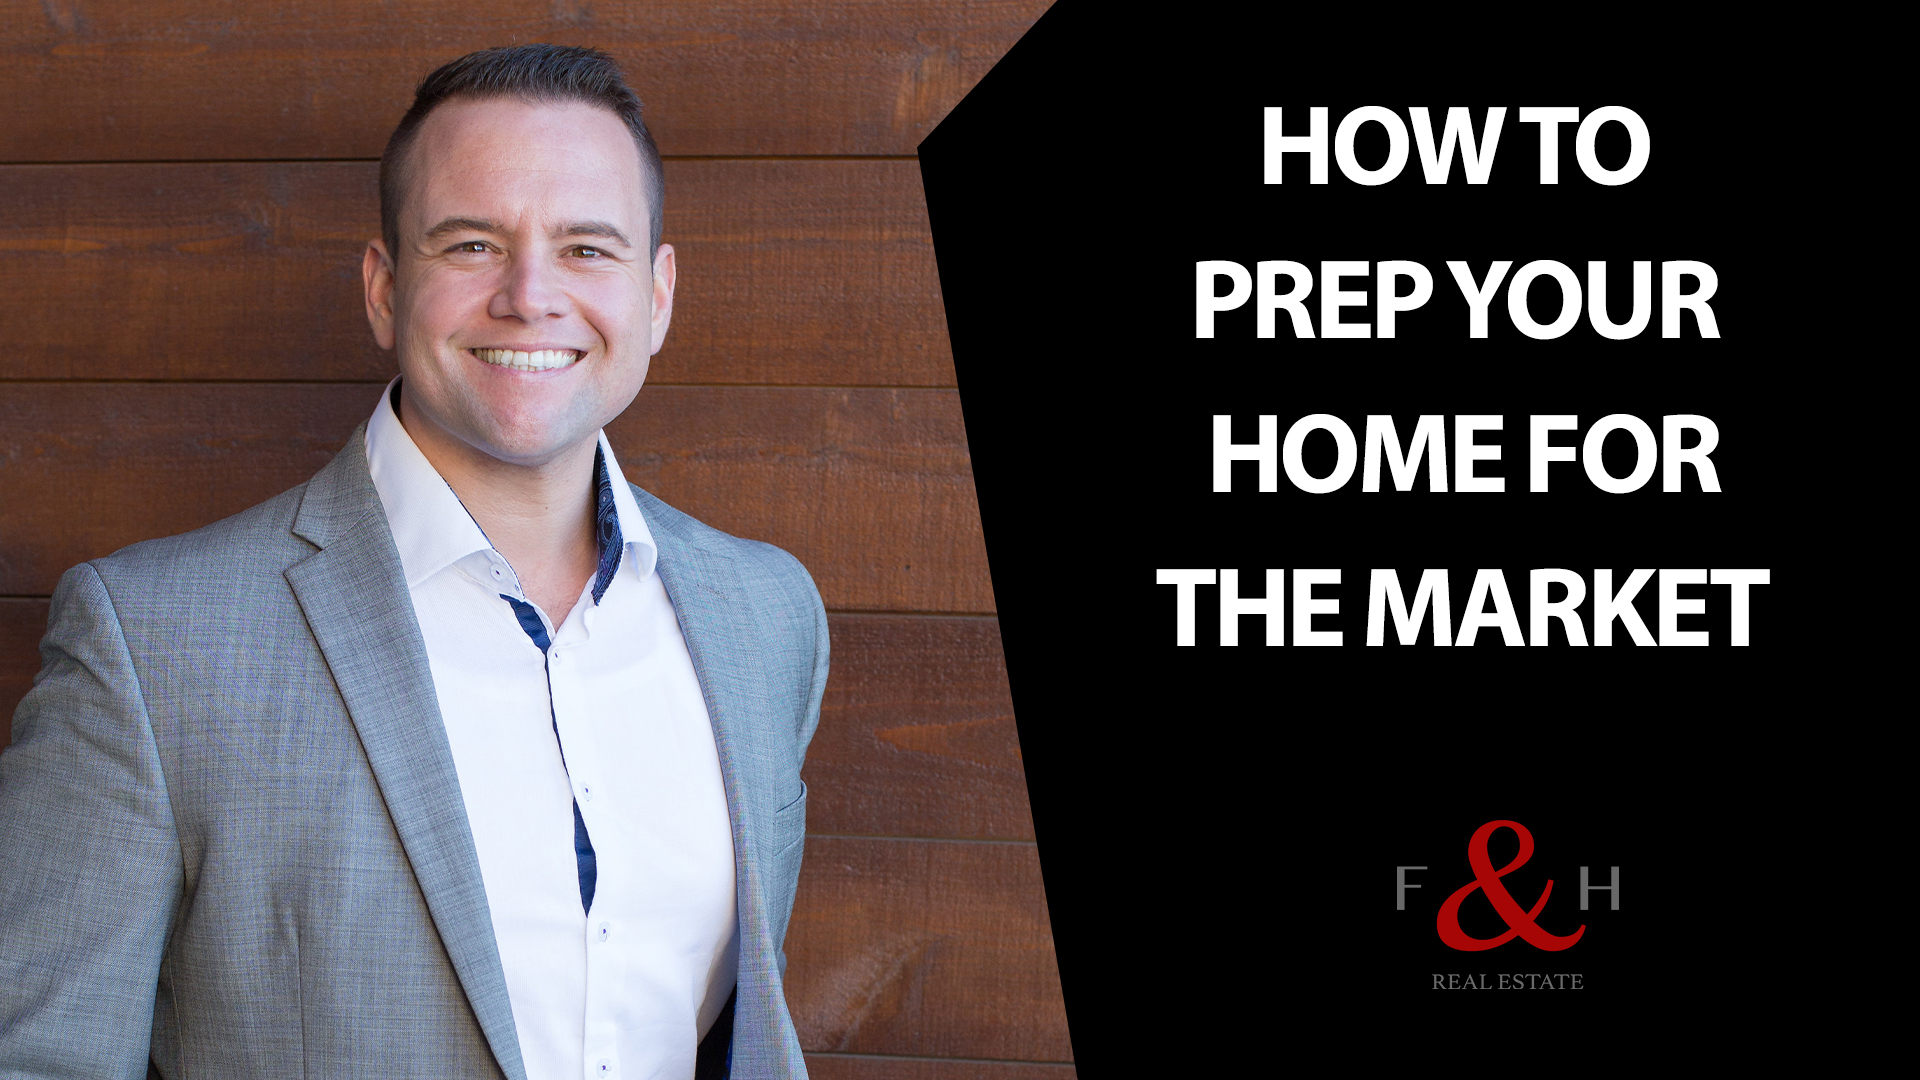 Prepping Your Home for the Market